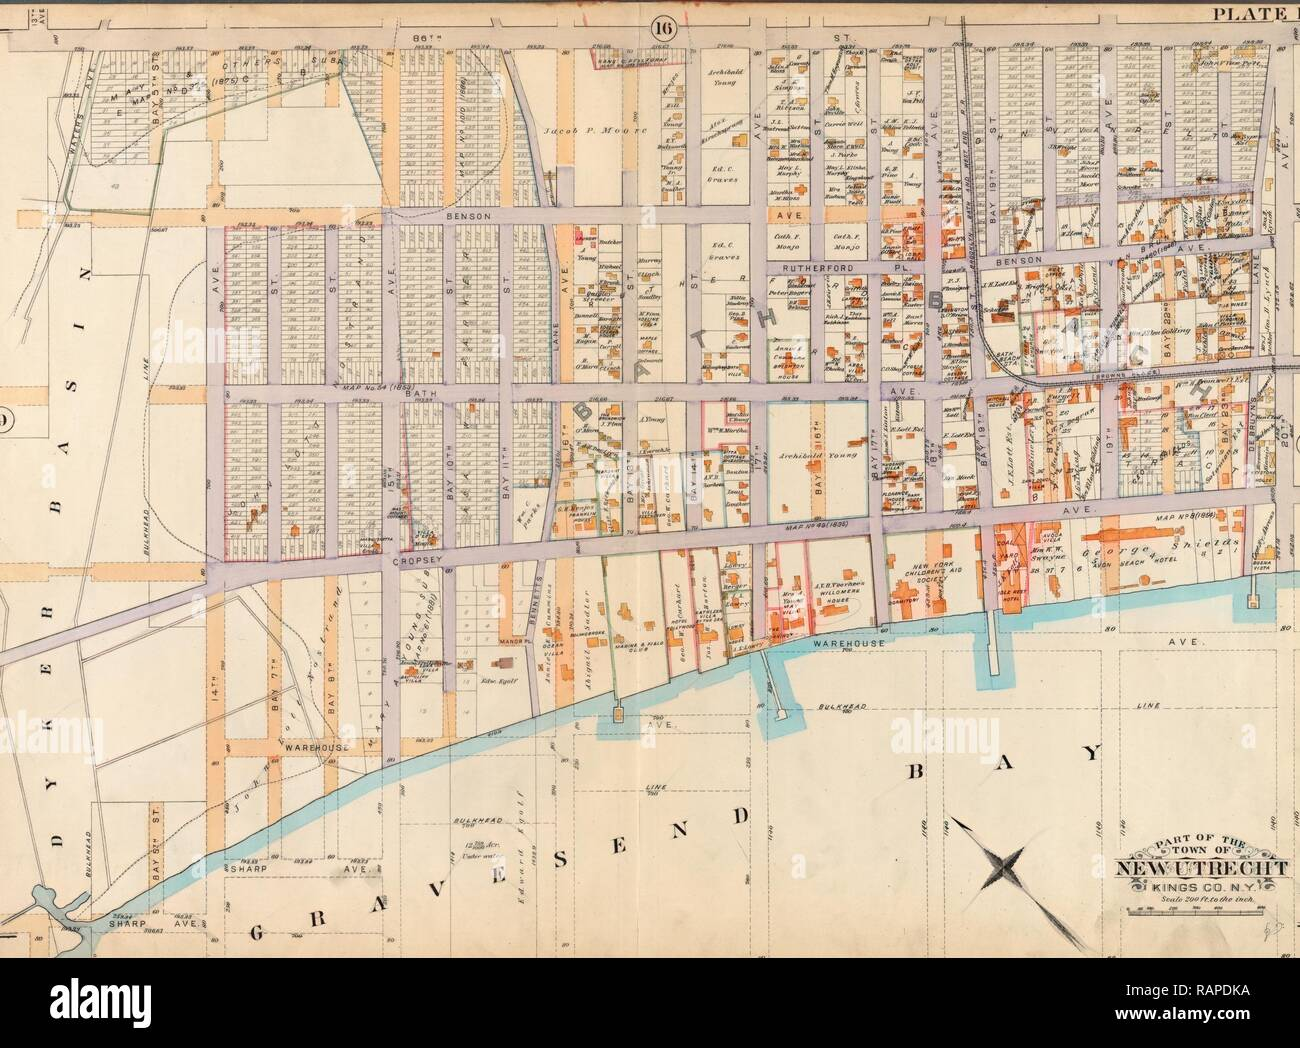 Old map of New York, USA. Reimagined by Gibon. Classic art with a modern twist reimagined - Stock Image